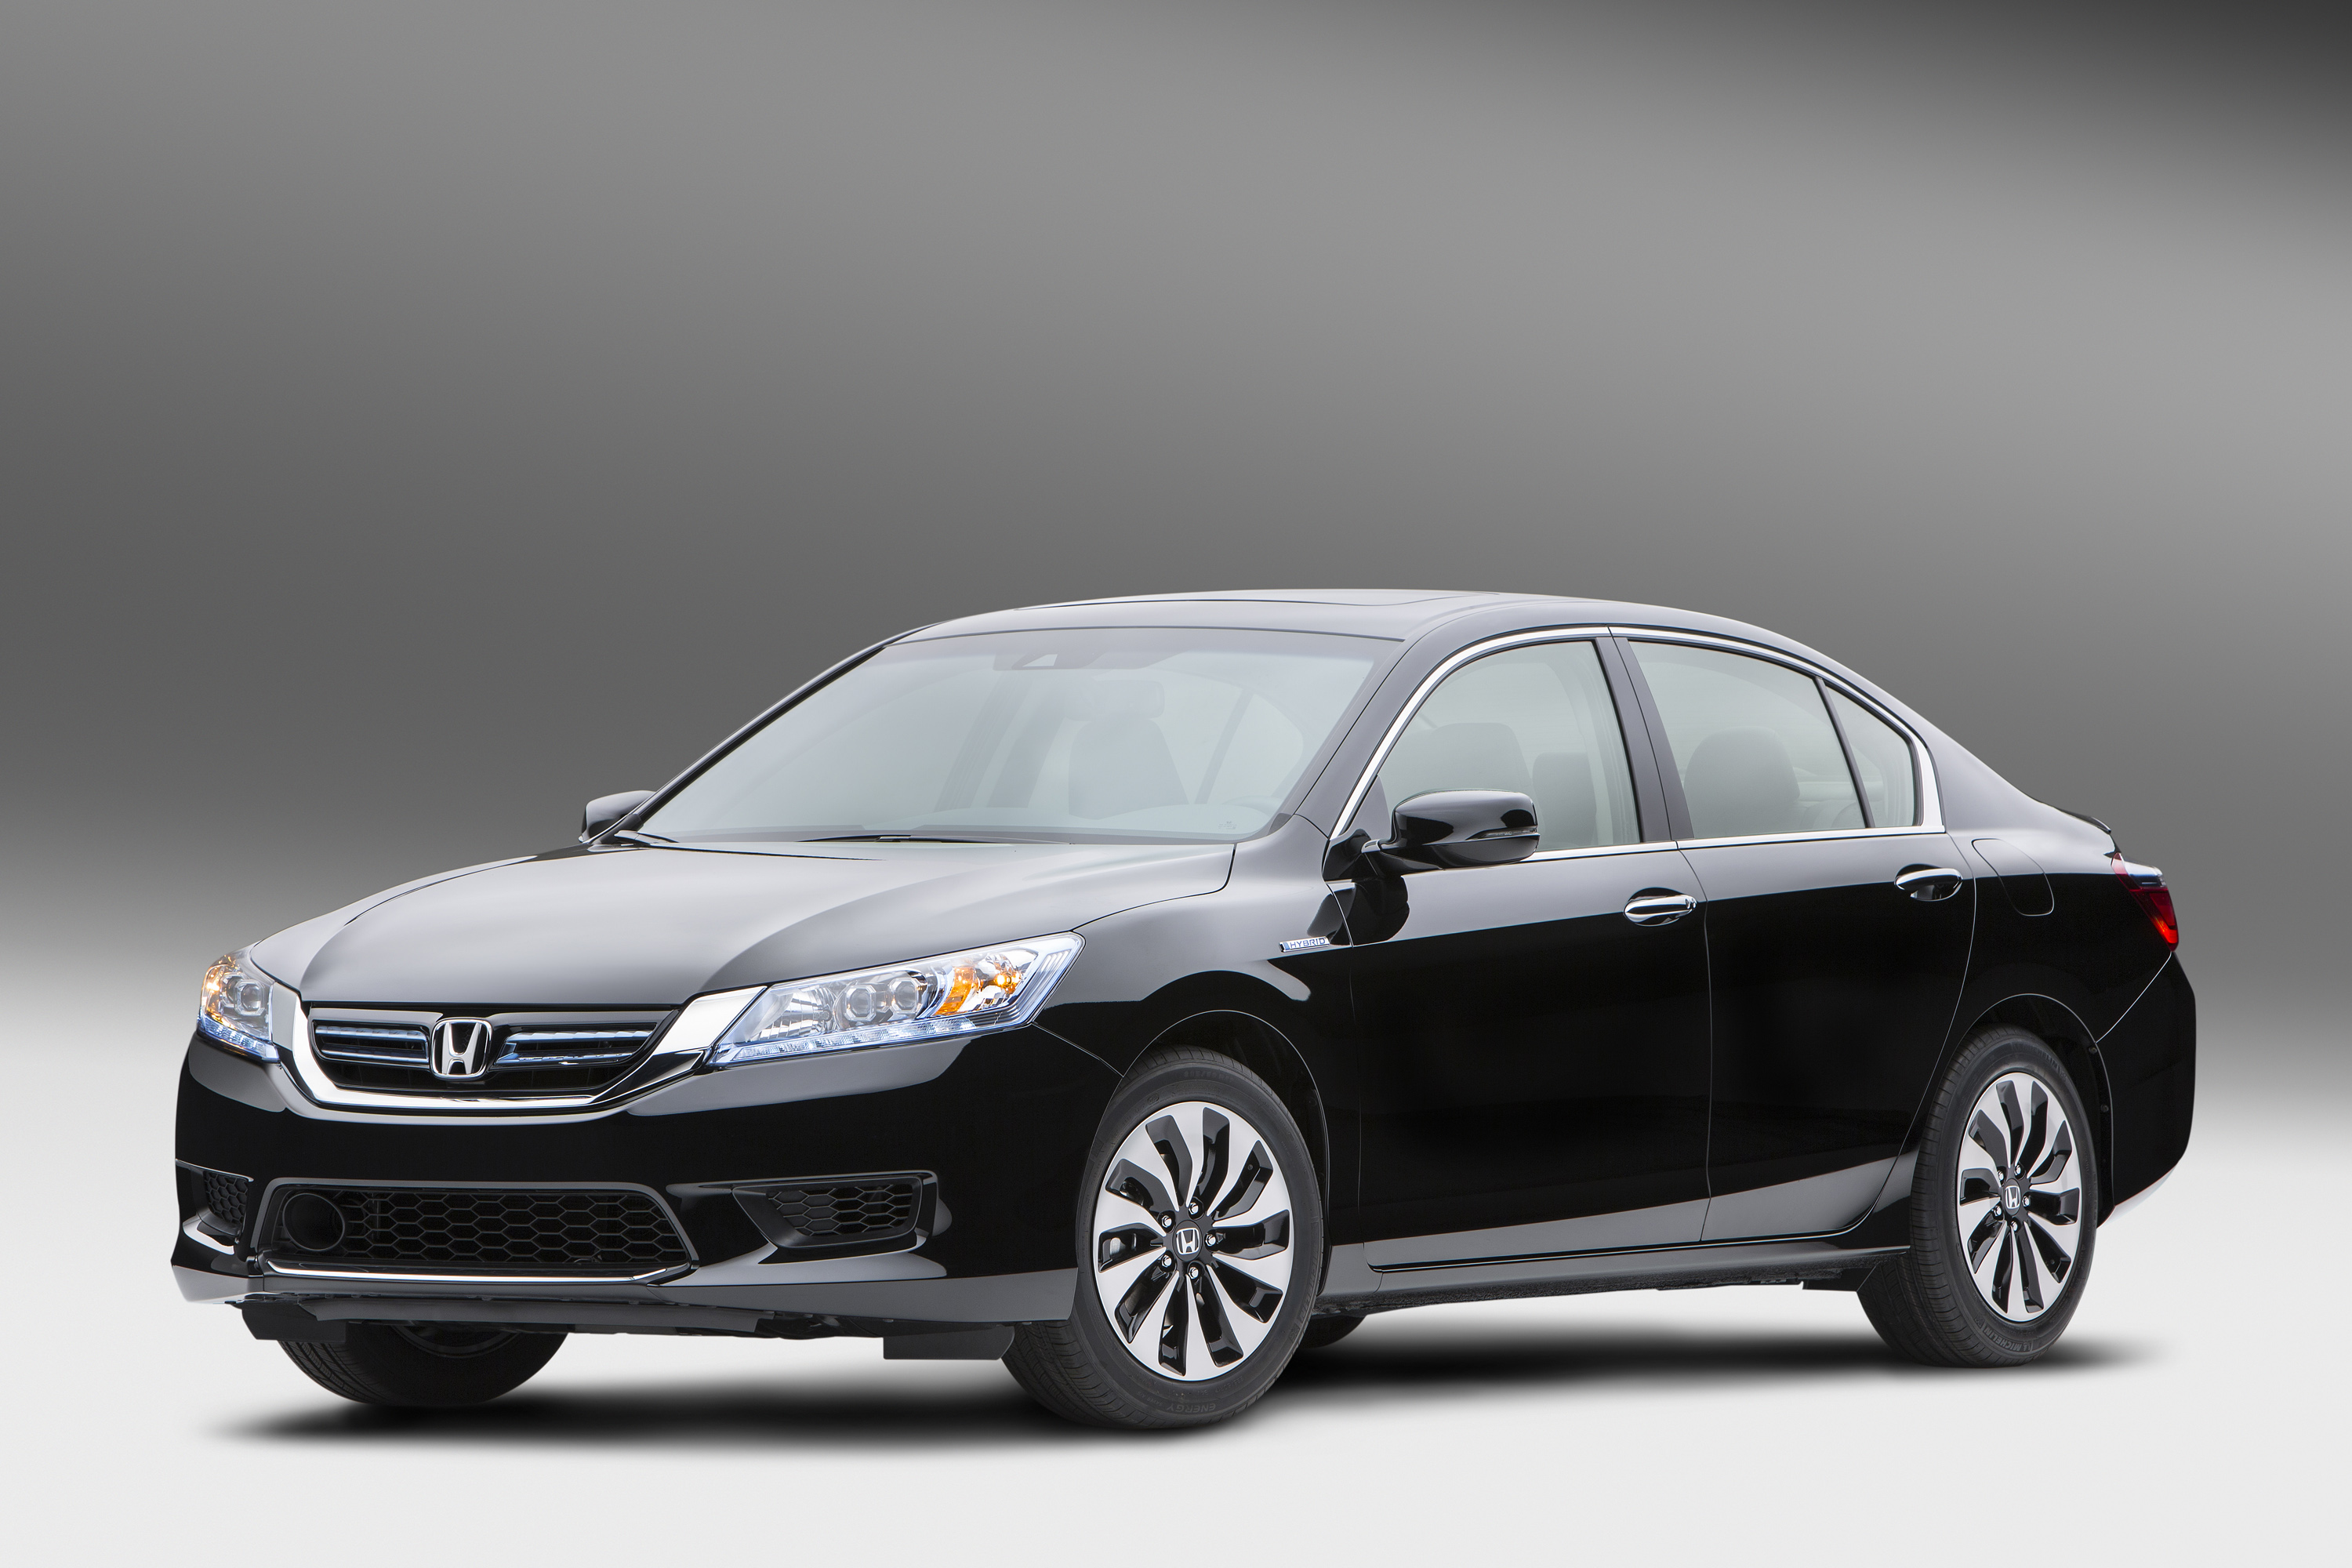 2014 Honda Accord #2